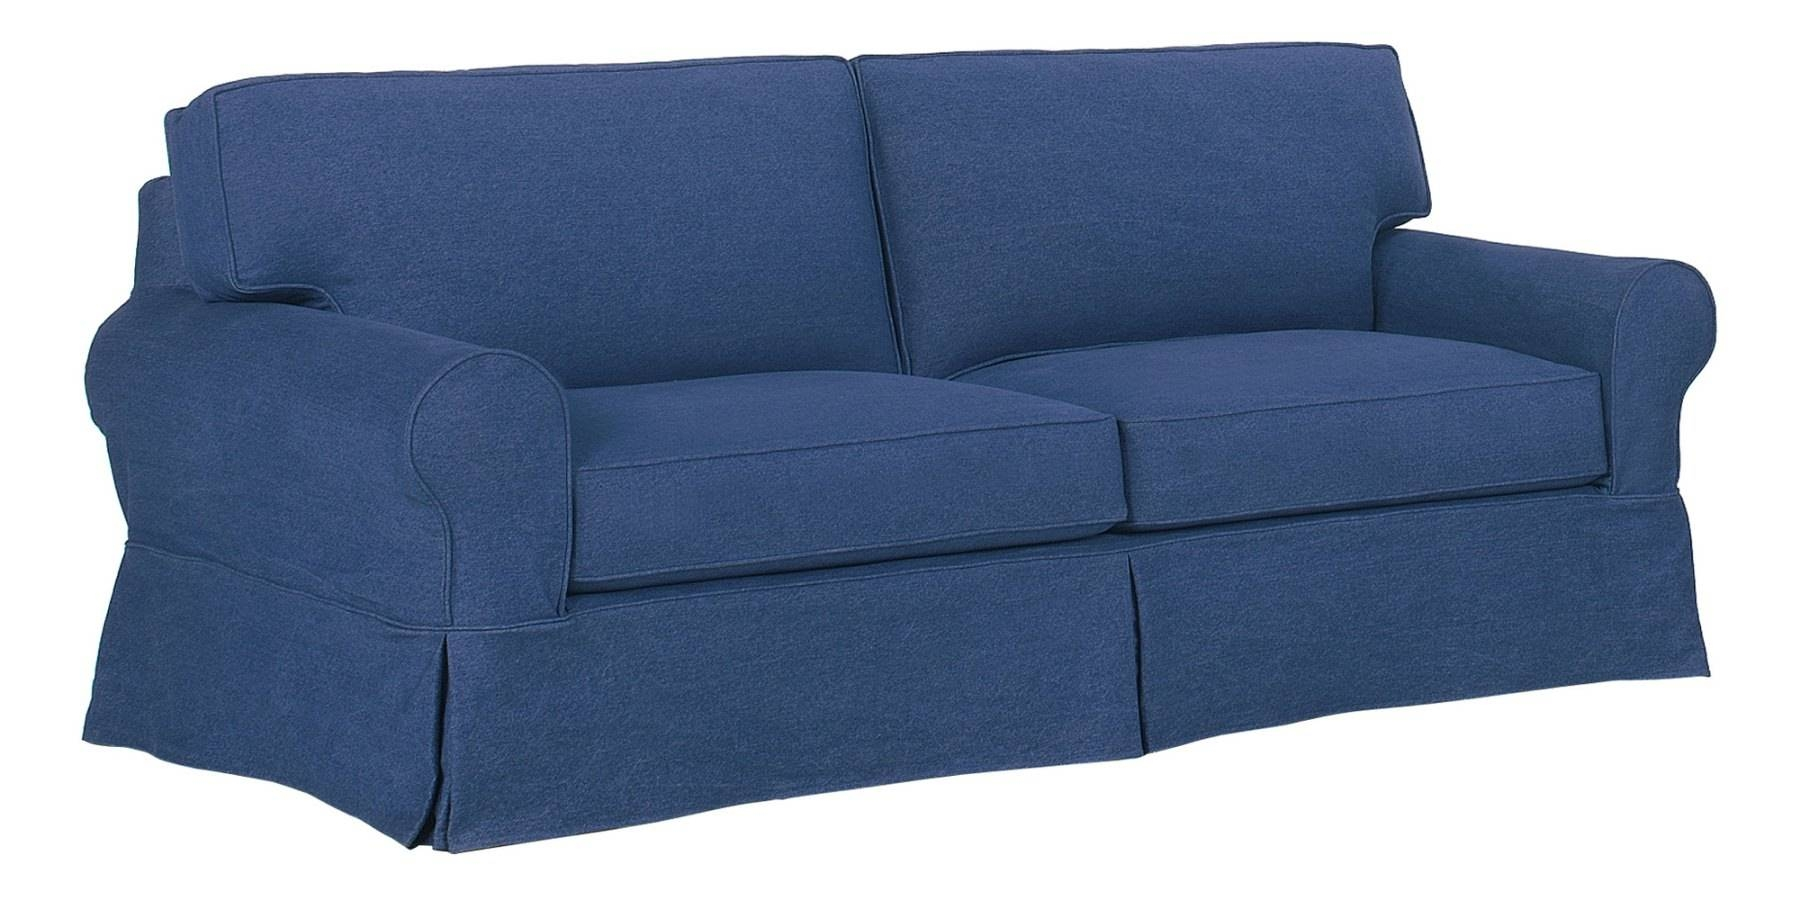 Furniture: Quick And Easy Solution To Protect Furniture From inside Blue Denim Sofas (Image 10 of 15)